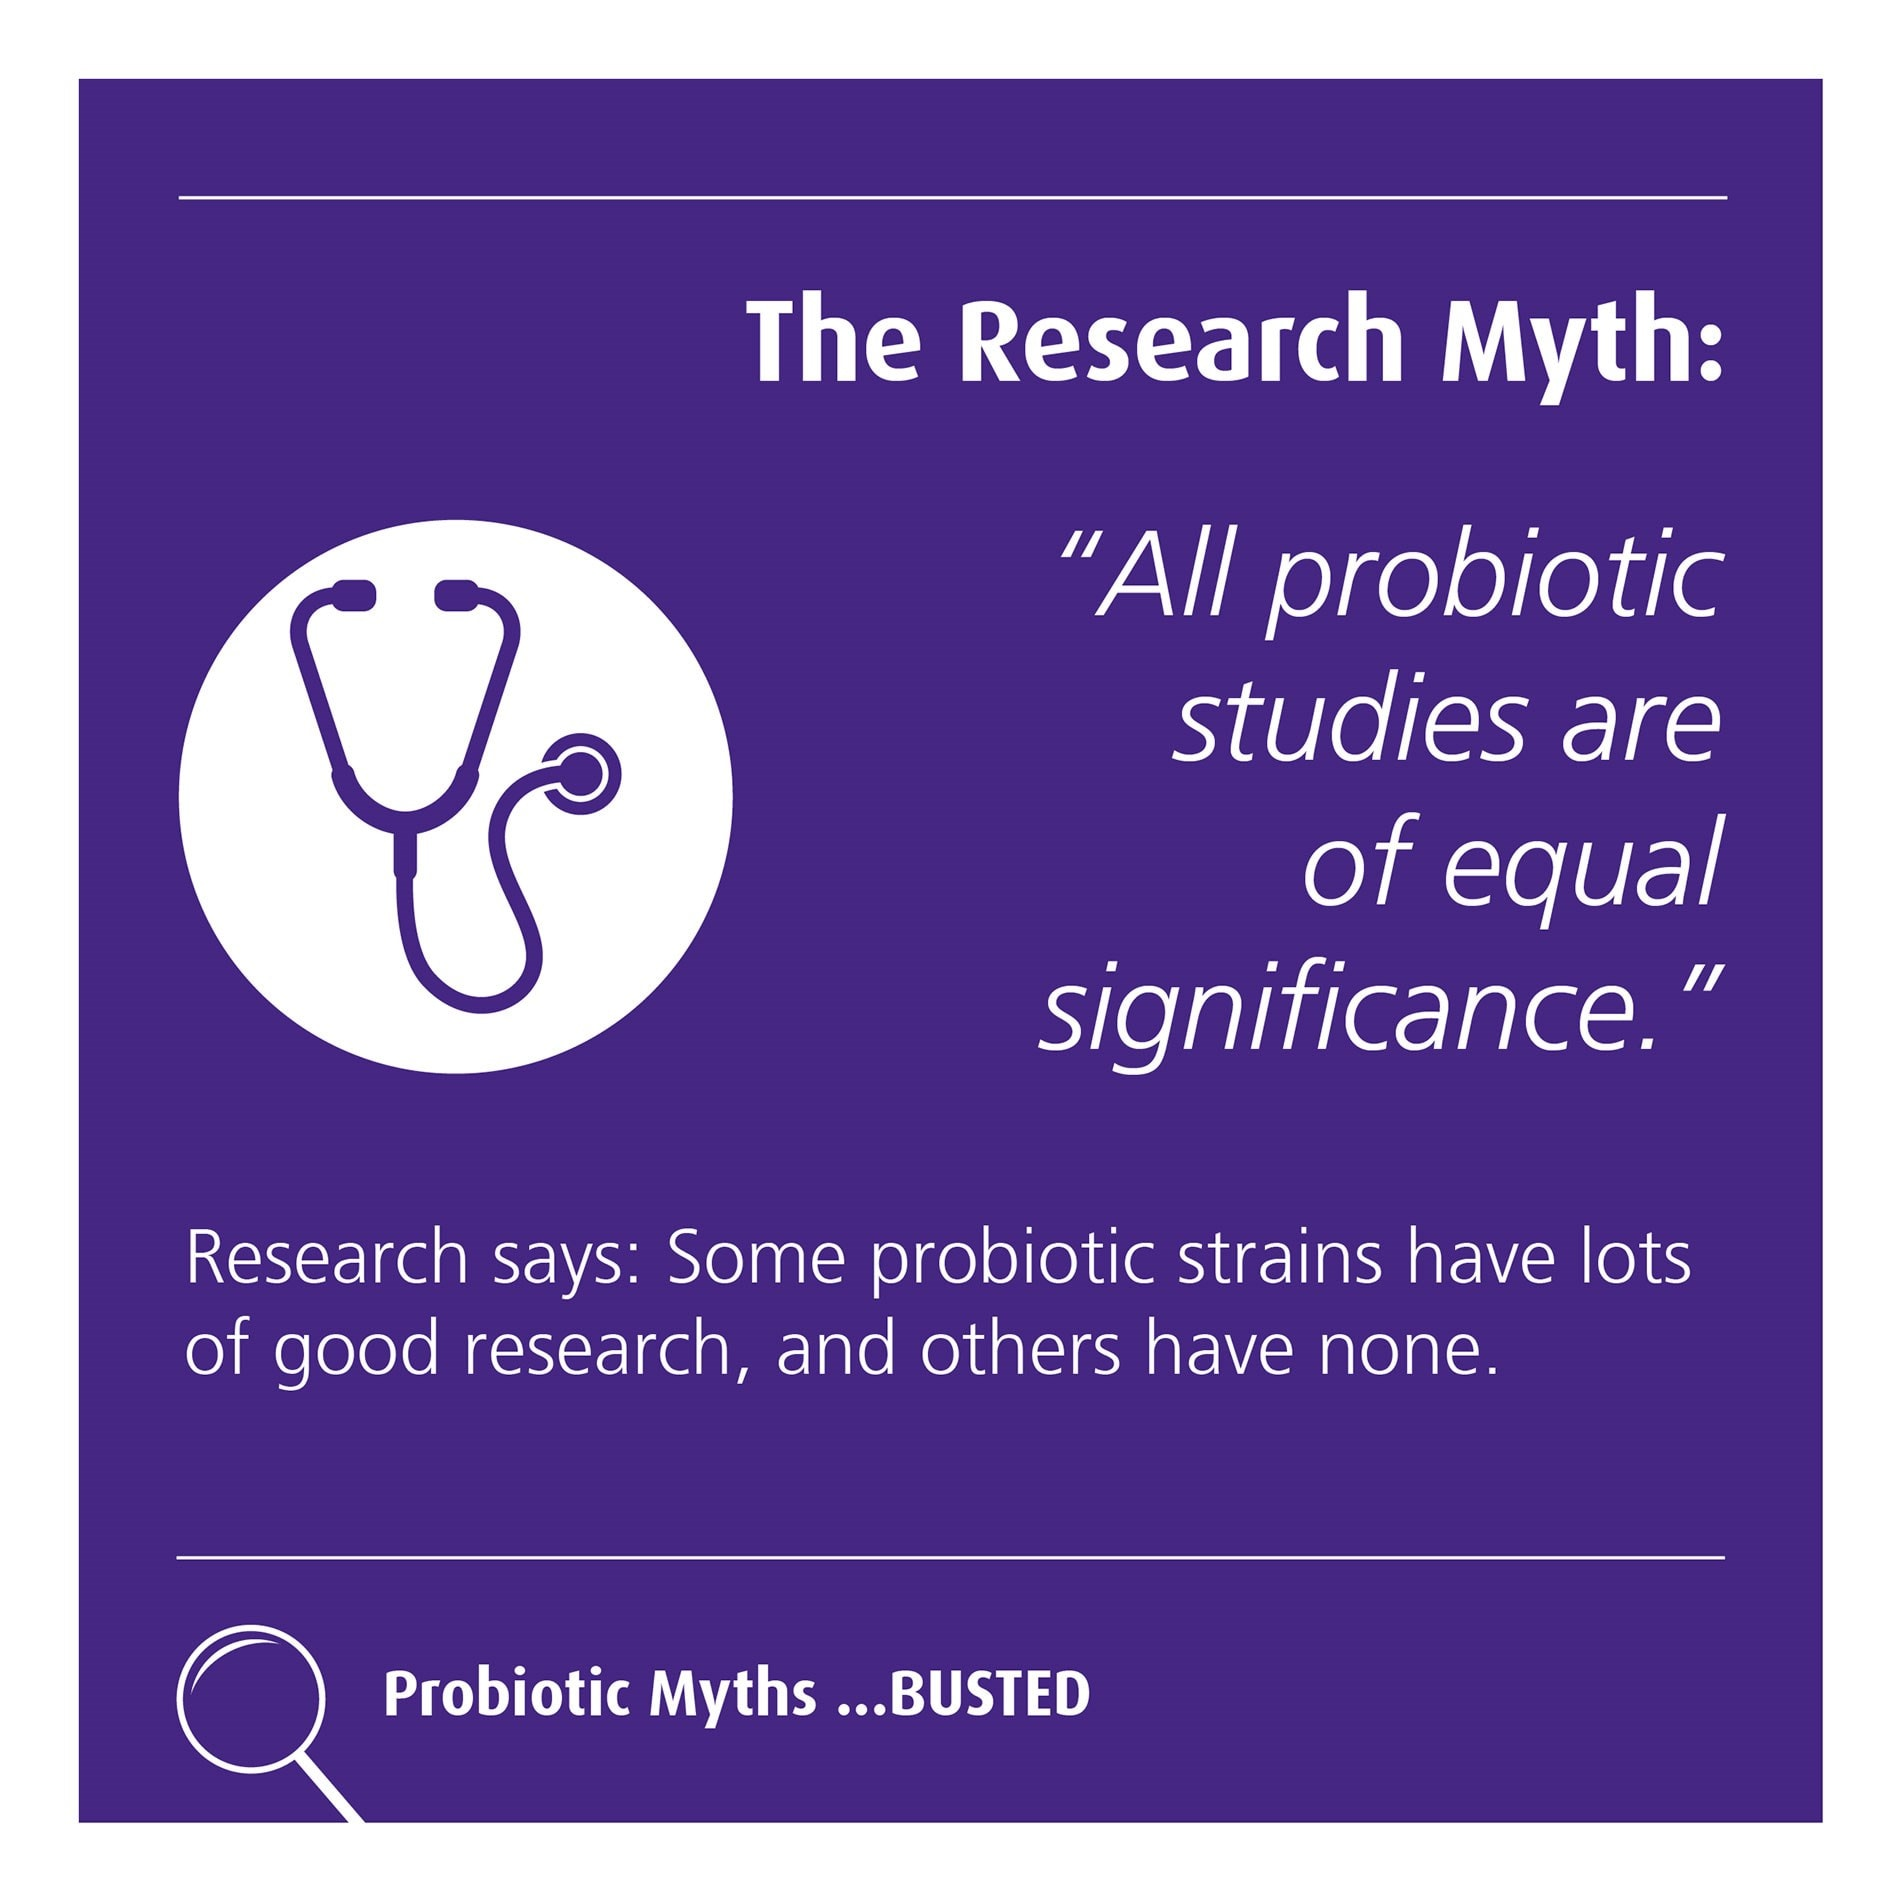 The research myth